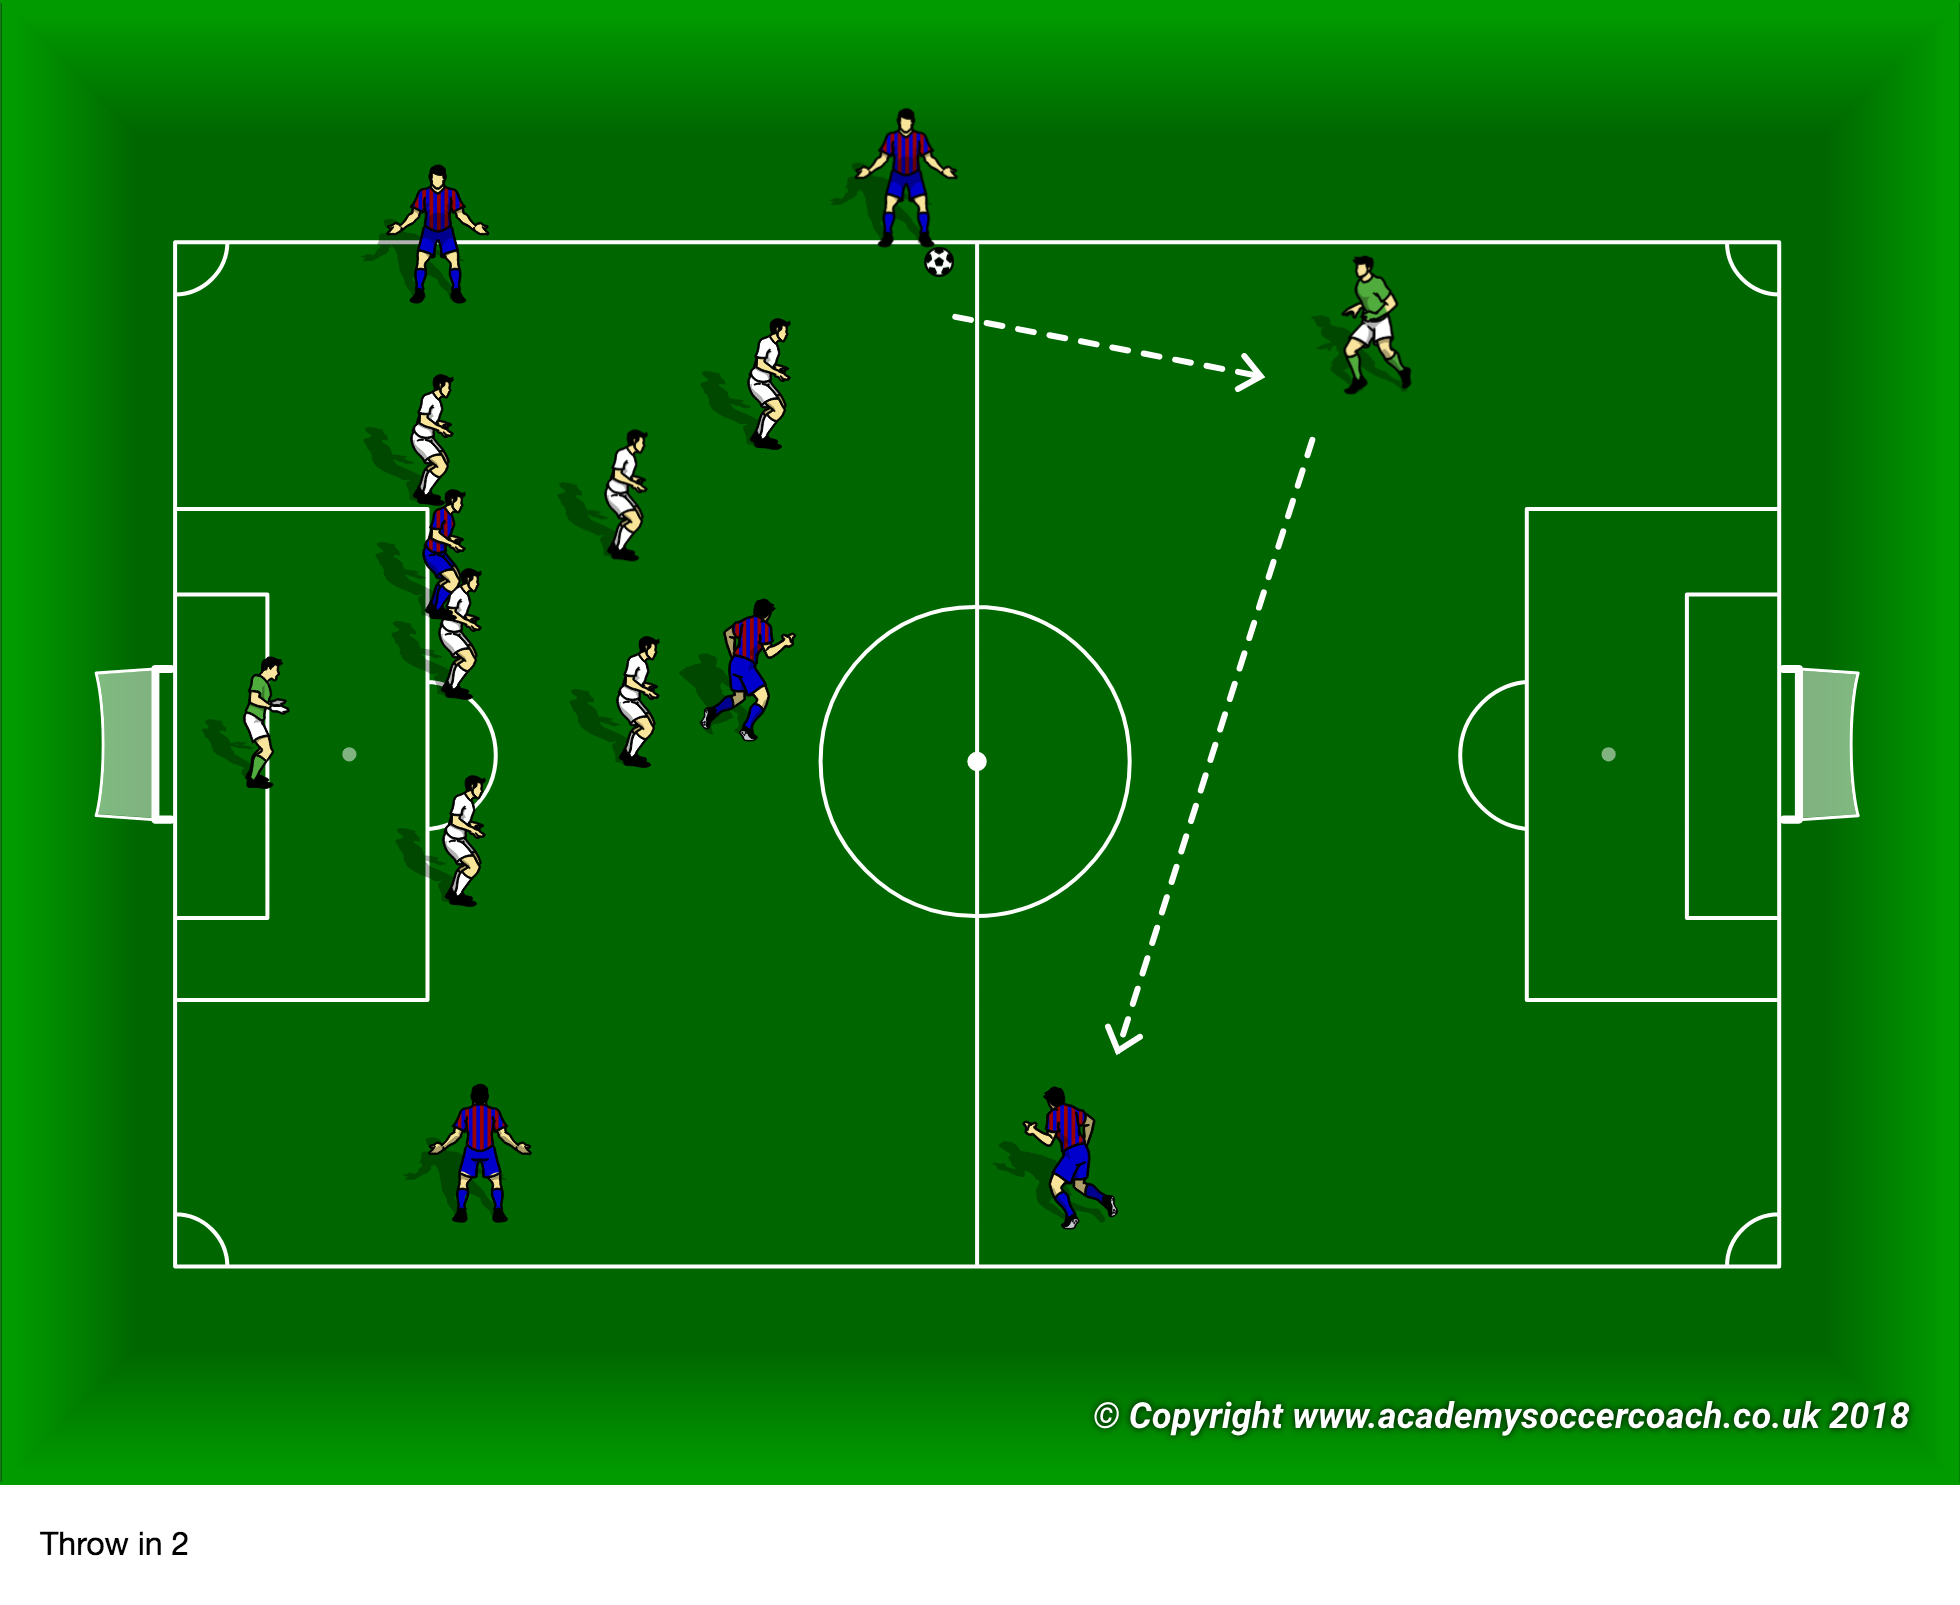 292d2102873 Even if the goalkeeper is unable to play the switch in one pass we can use a  second player to switch the ball in two passes while still creating a 1v1  in ...